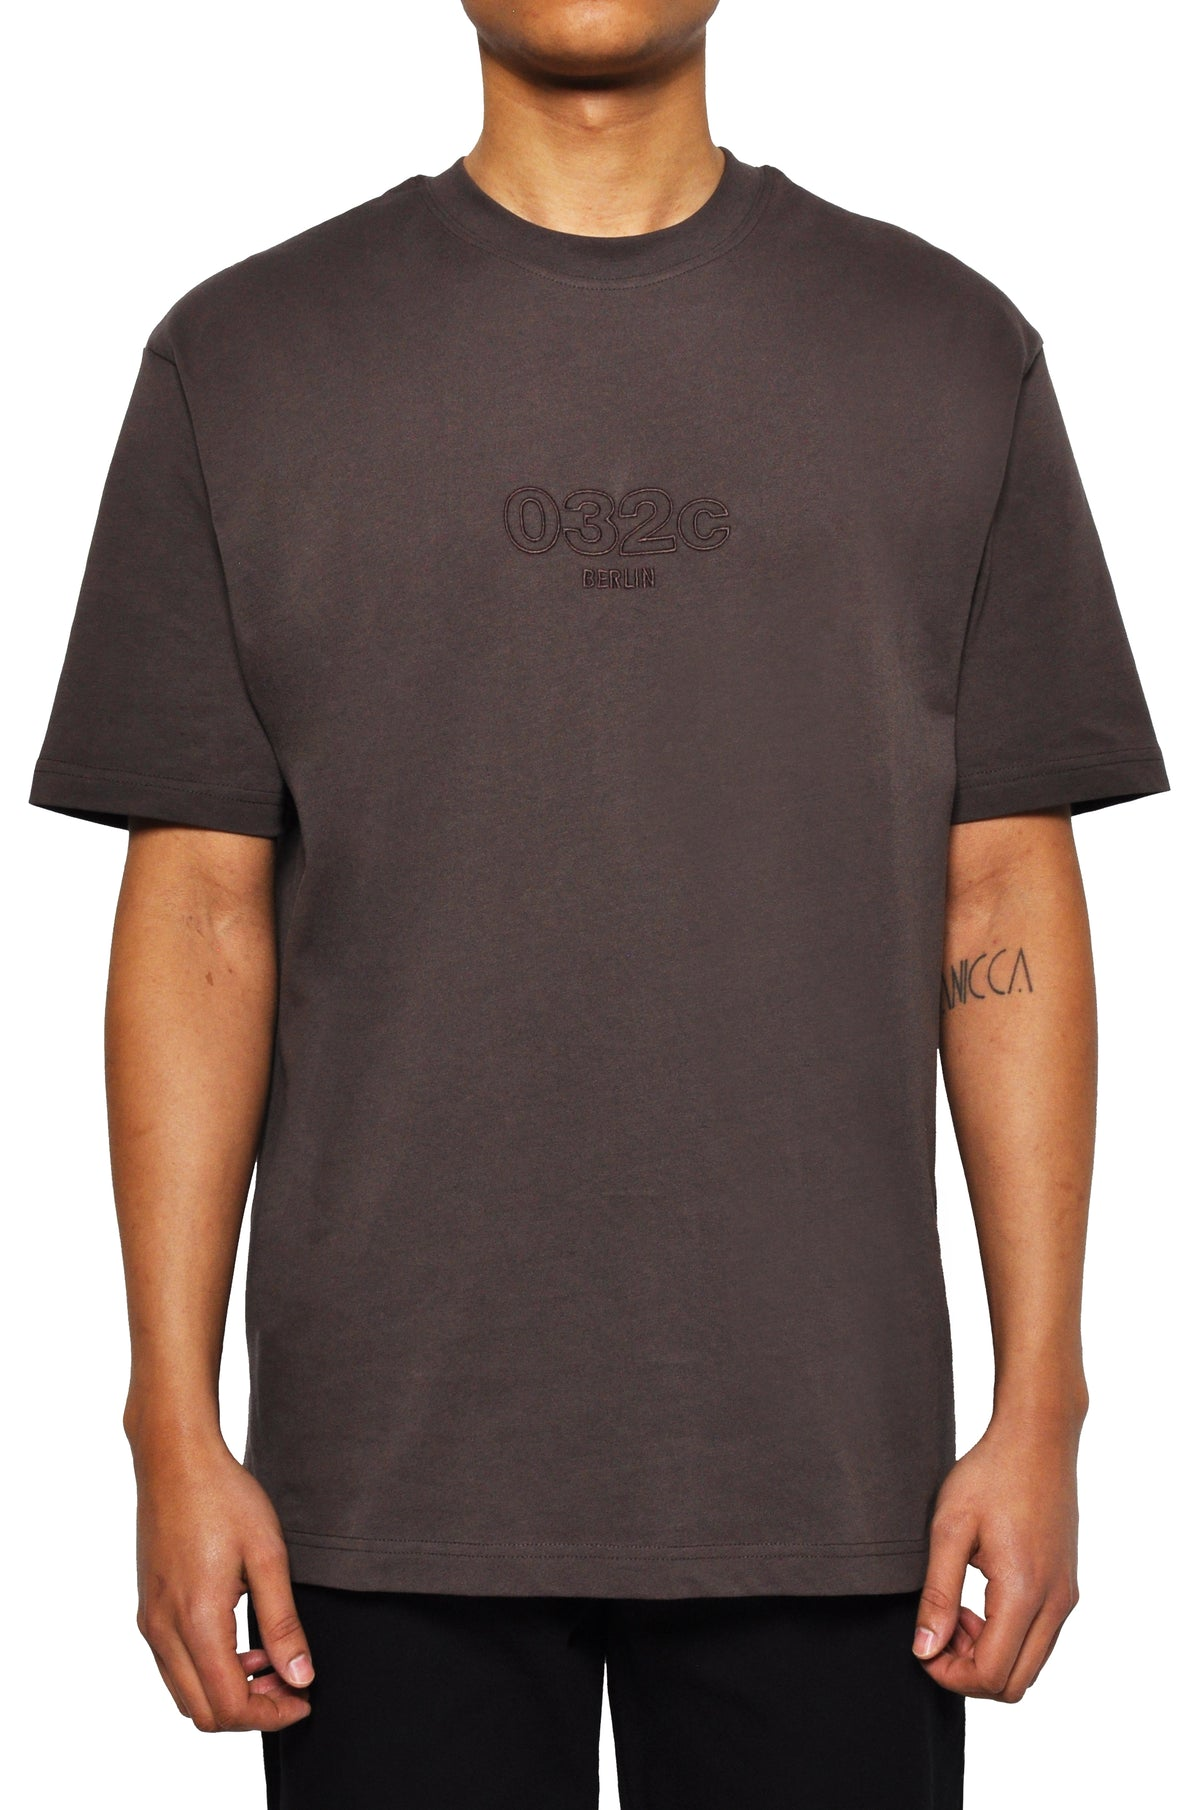 "032c LoveSexDreams ""2"" T-Shirt Brown - 032c"